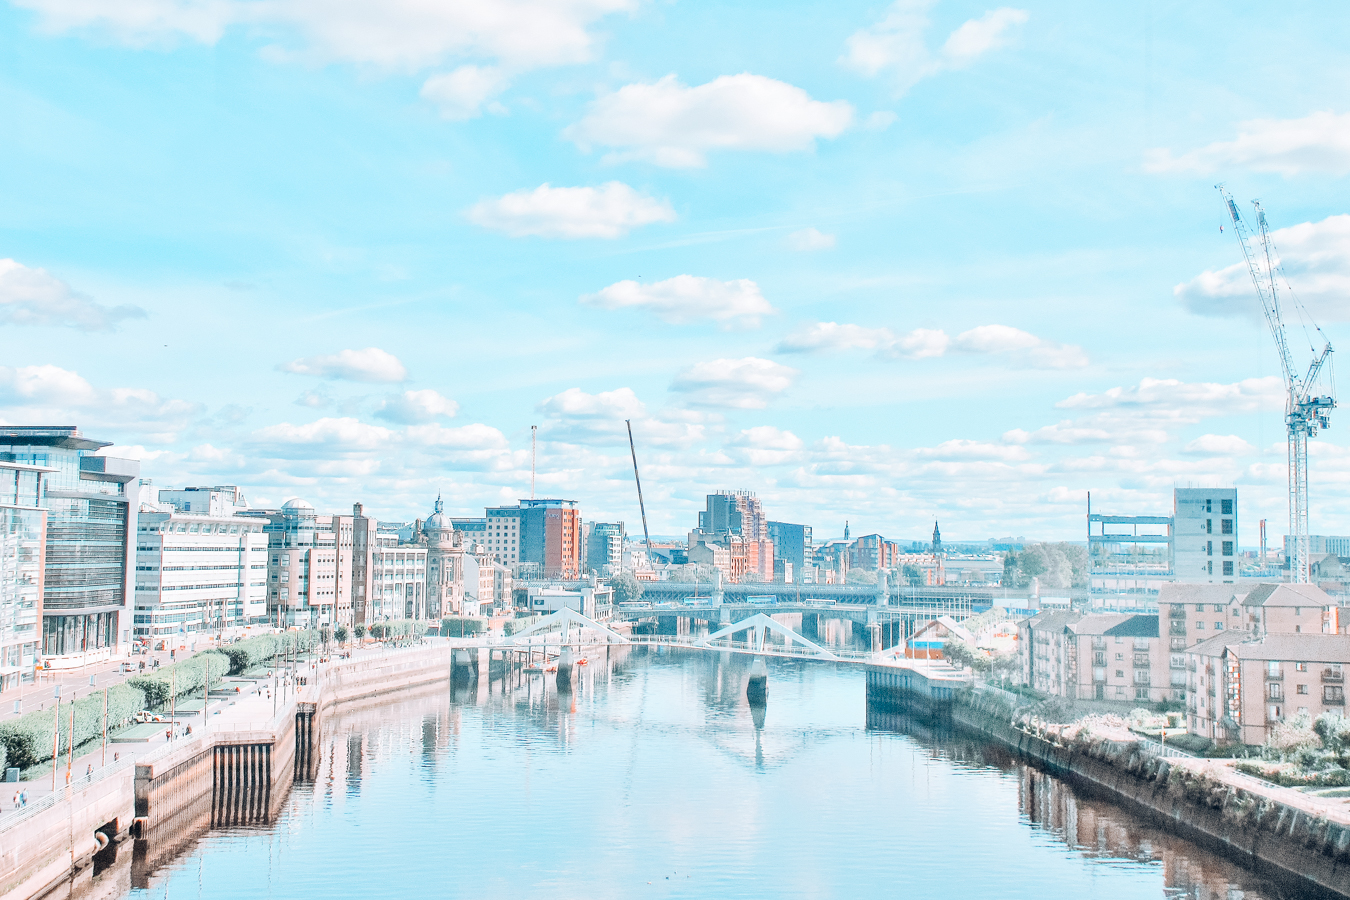 Water and buildings in Glasgow